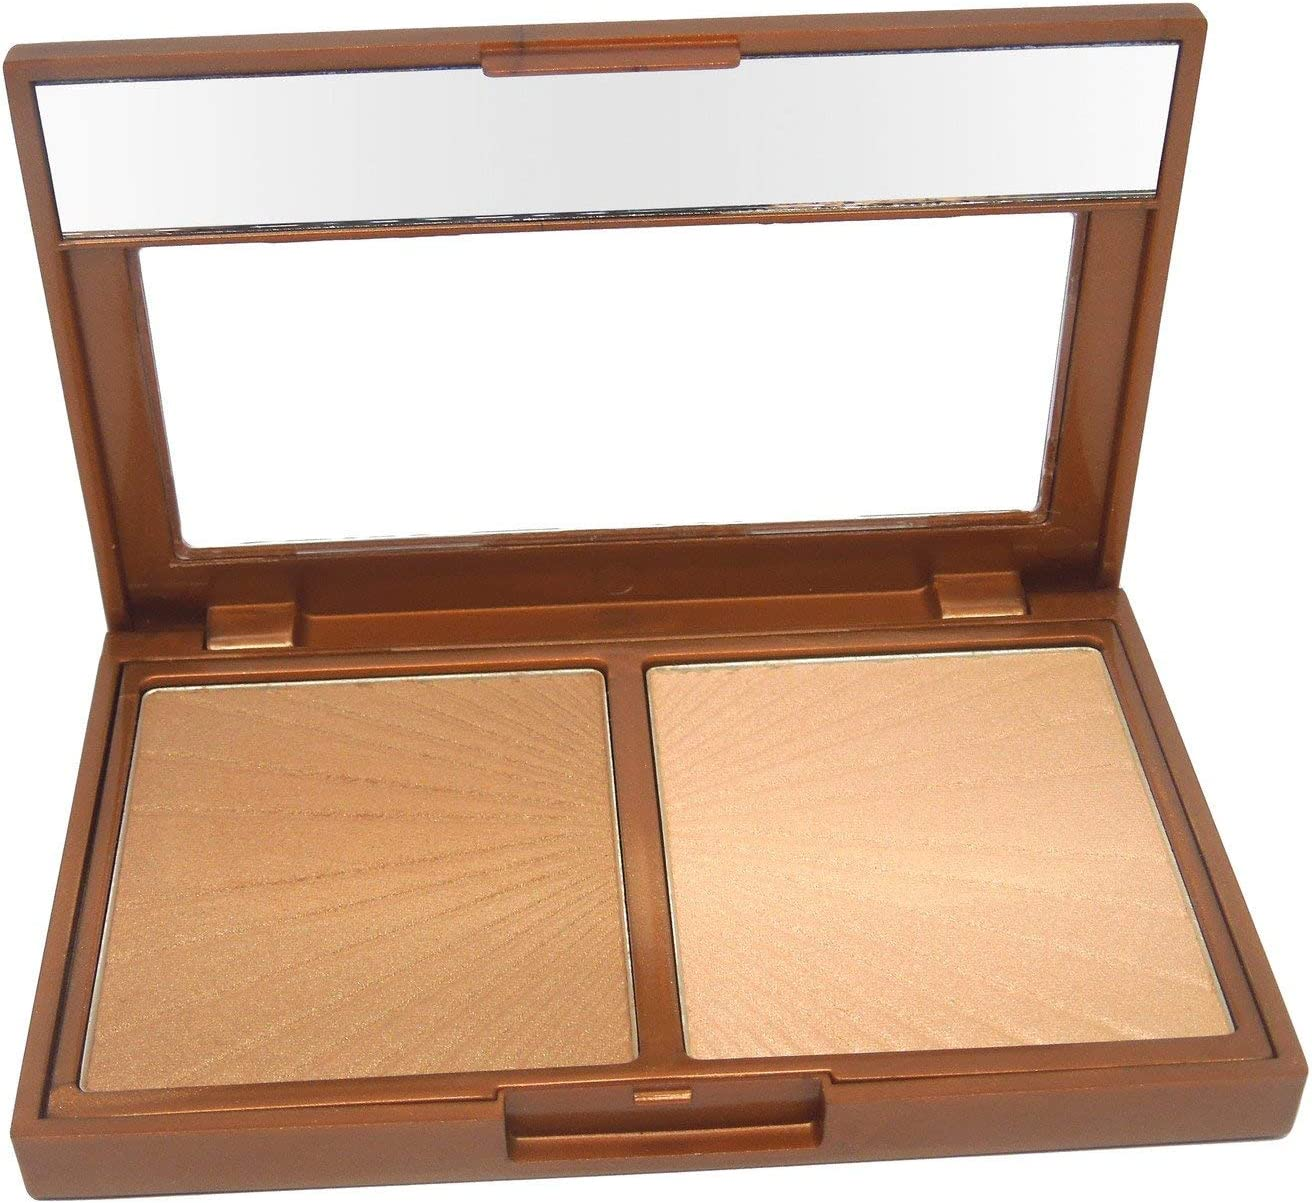 W7 | Bronzer | Hollywood Bronze & Glow Duo Compact | Streak and Smudge Resistant for a Flawless Finish